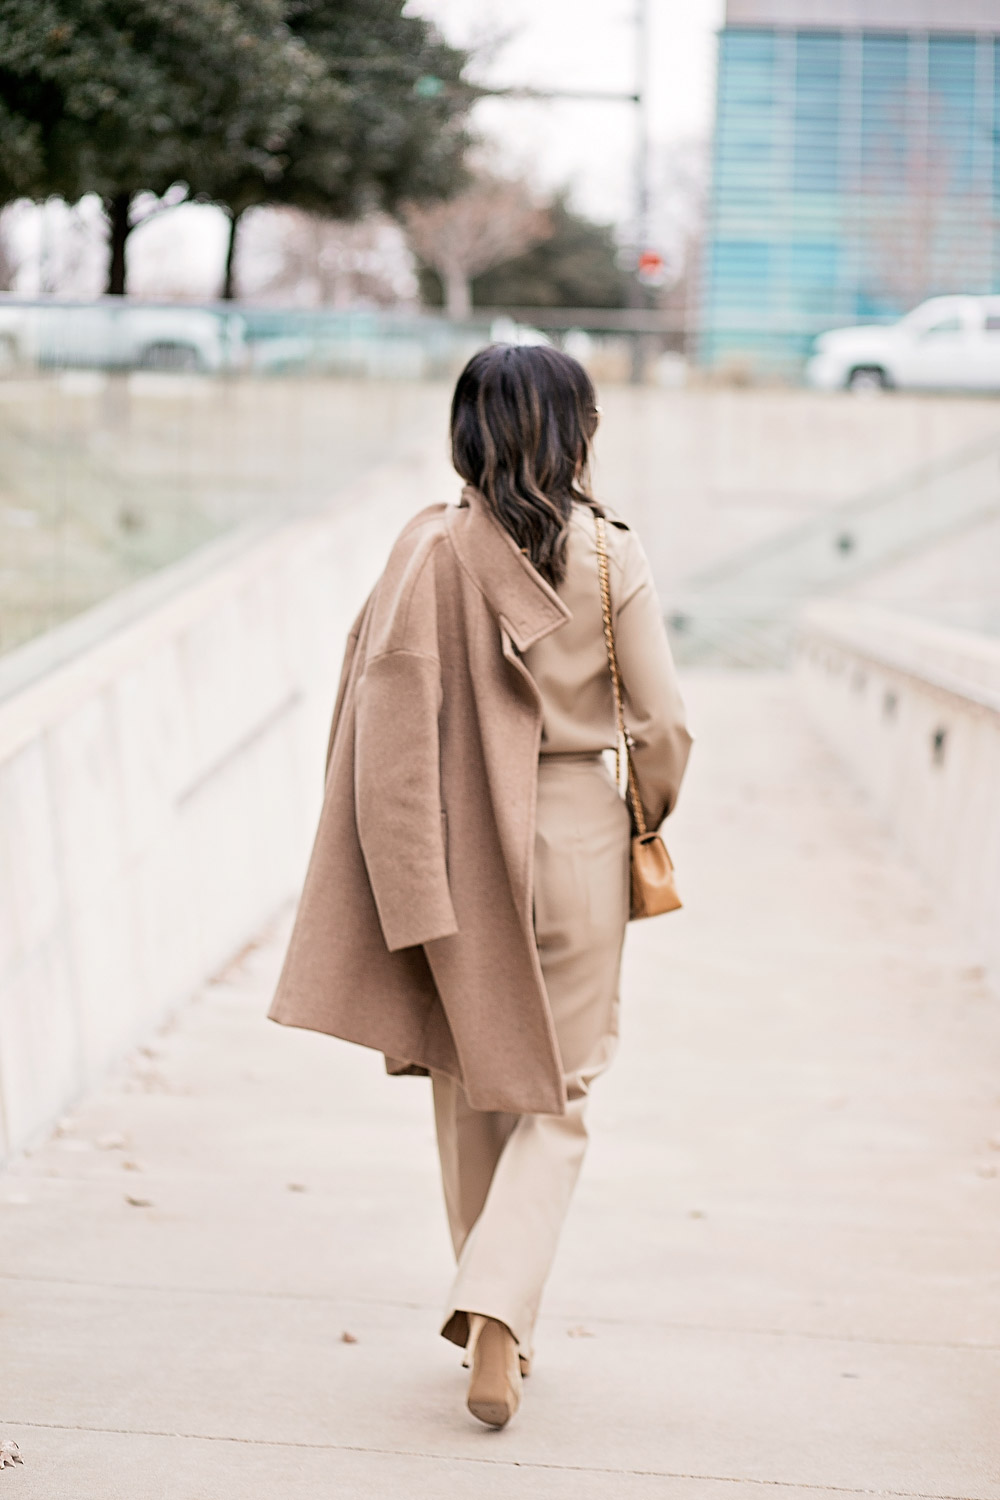 camel coat and beige coord set